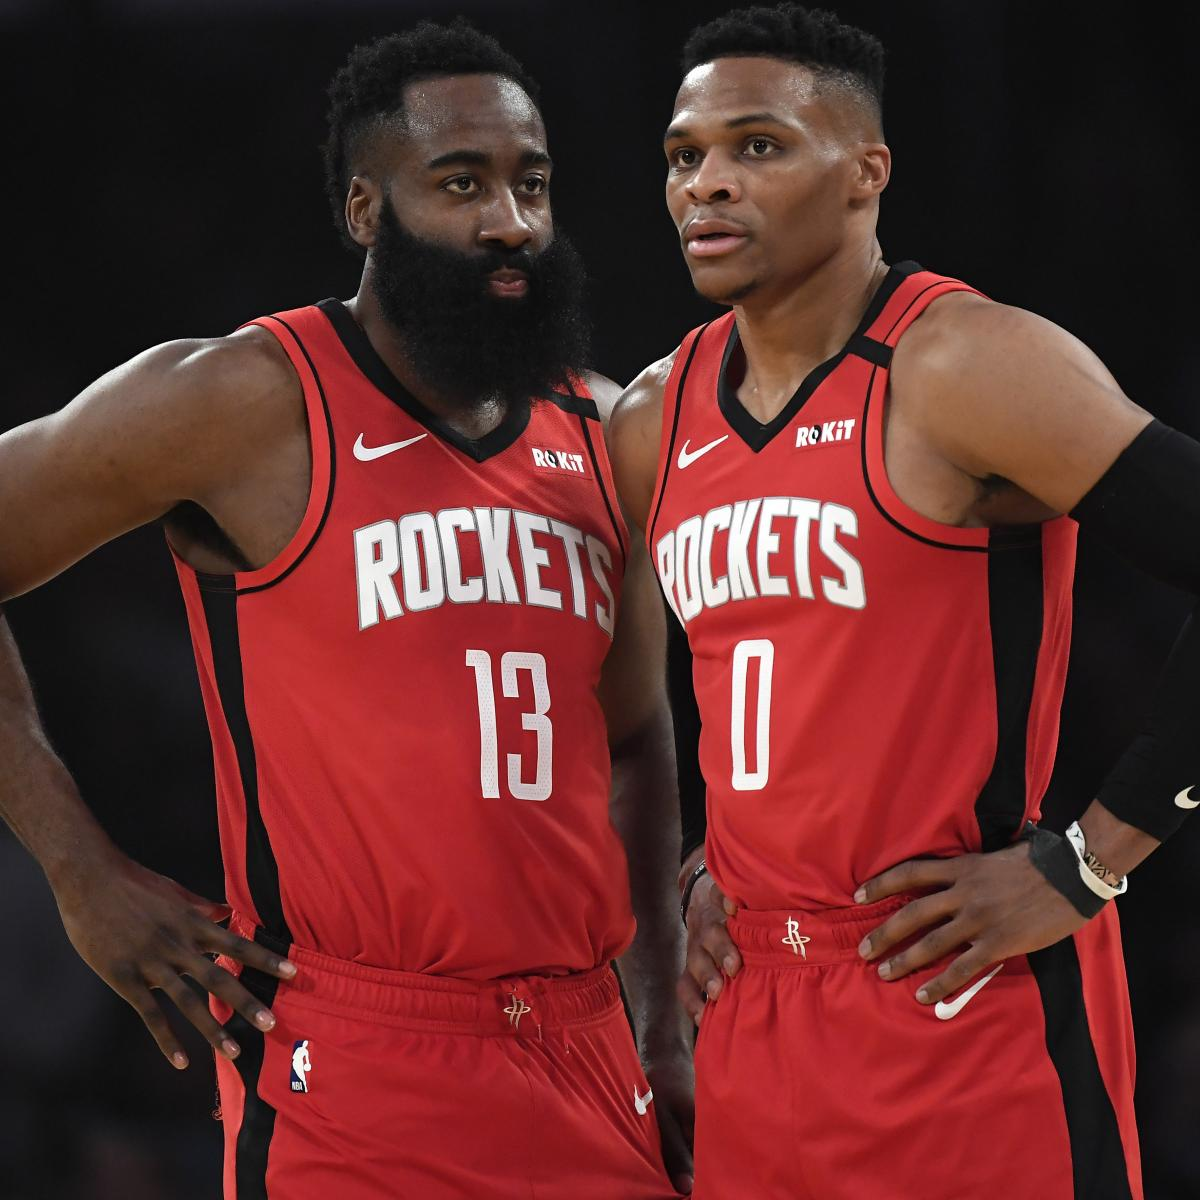 Russell Westbrook Estimates James Harden Spends $500K Annually on Clothes